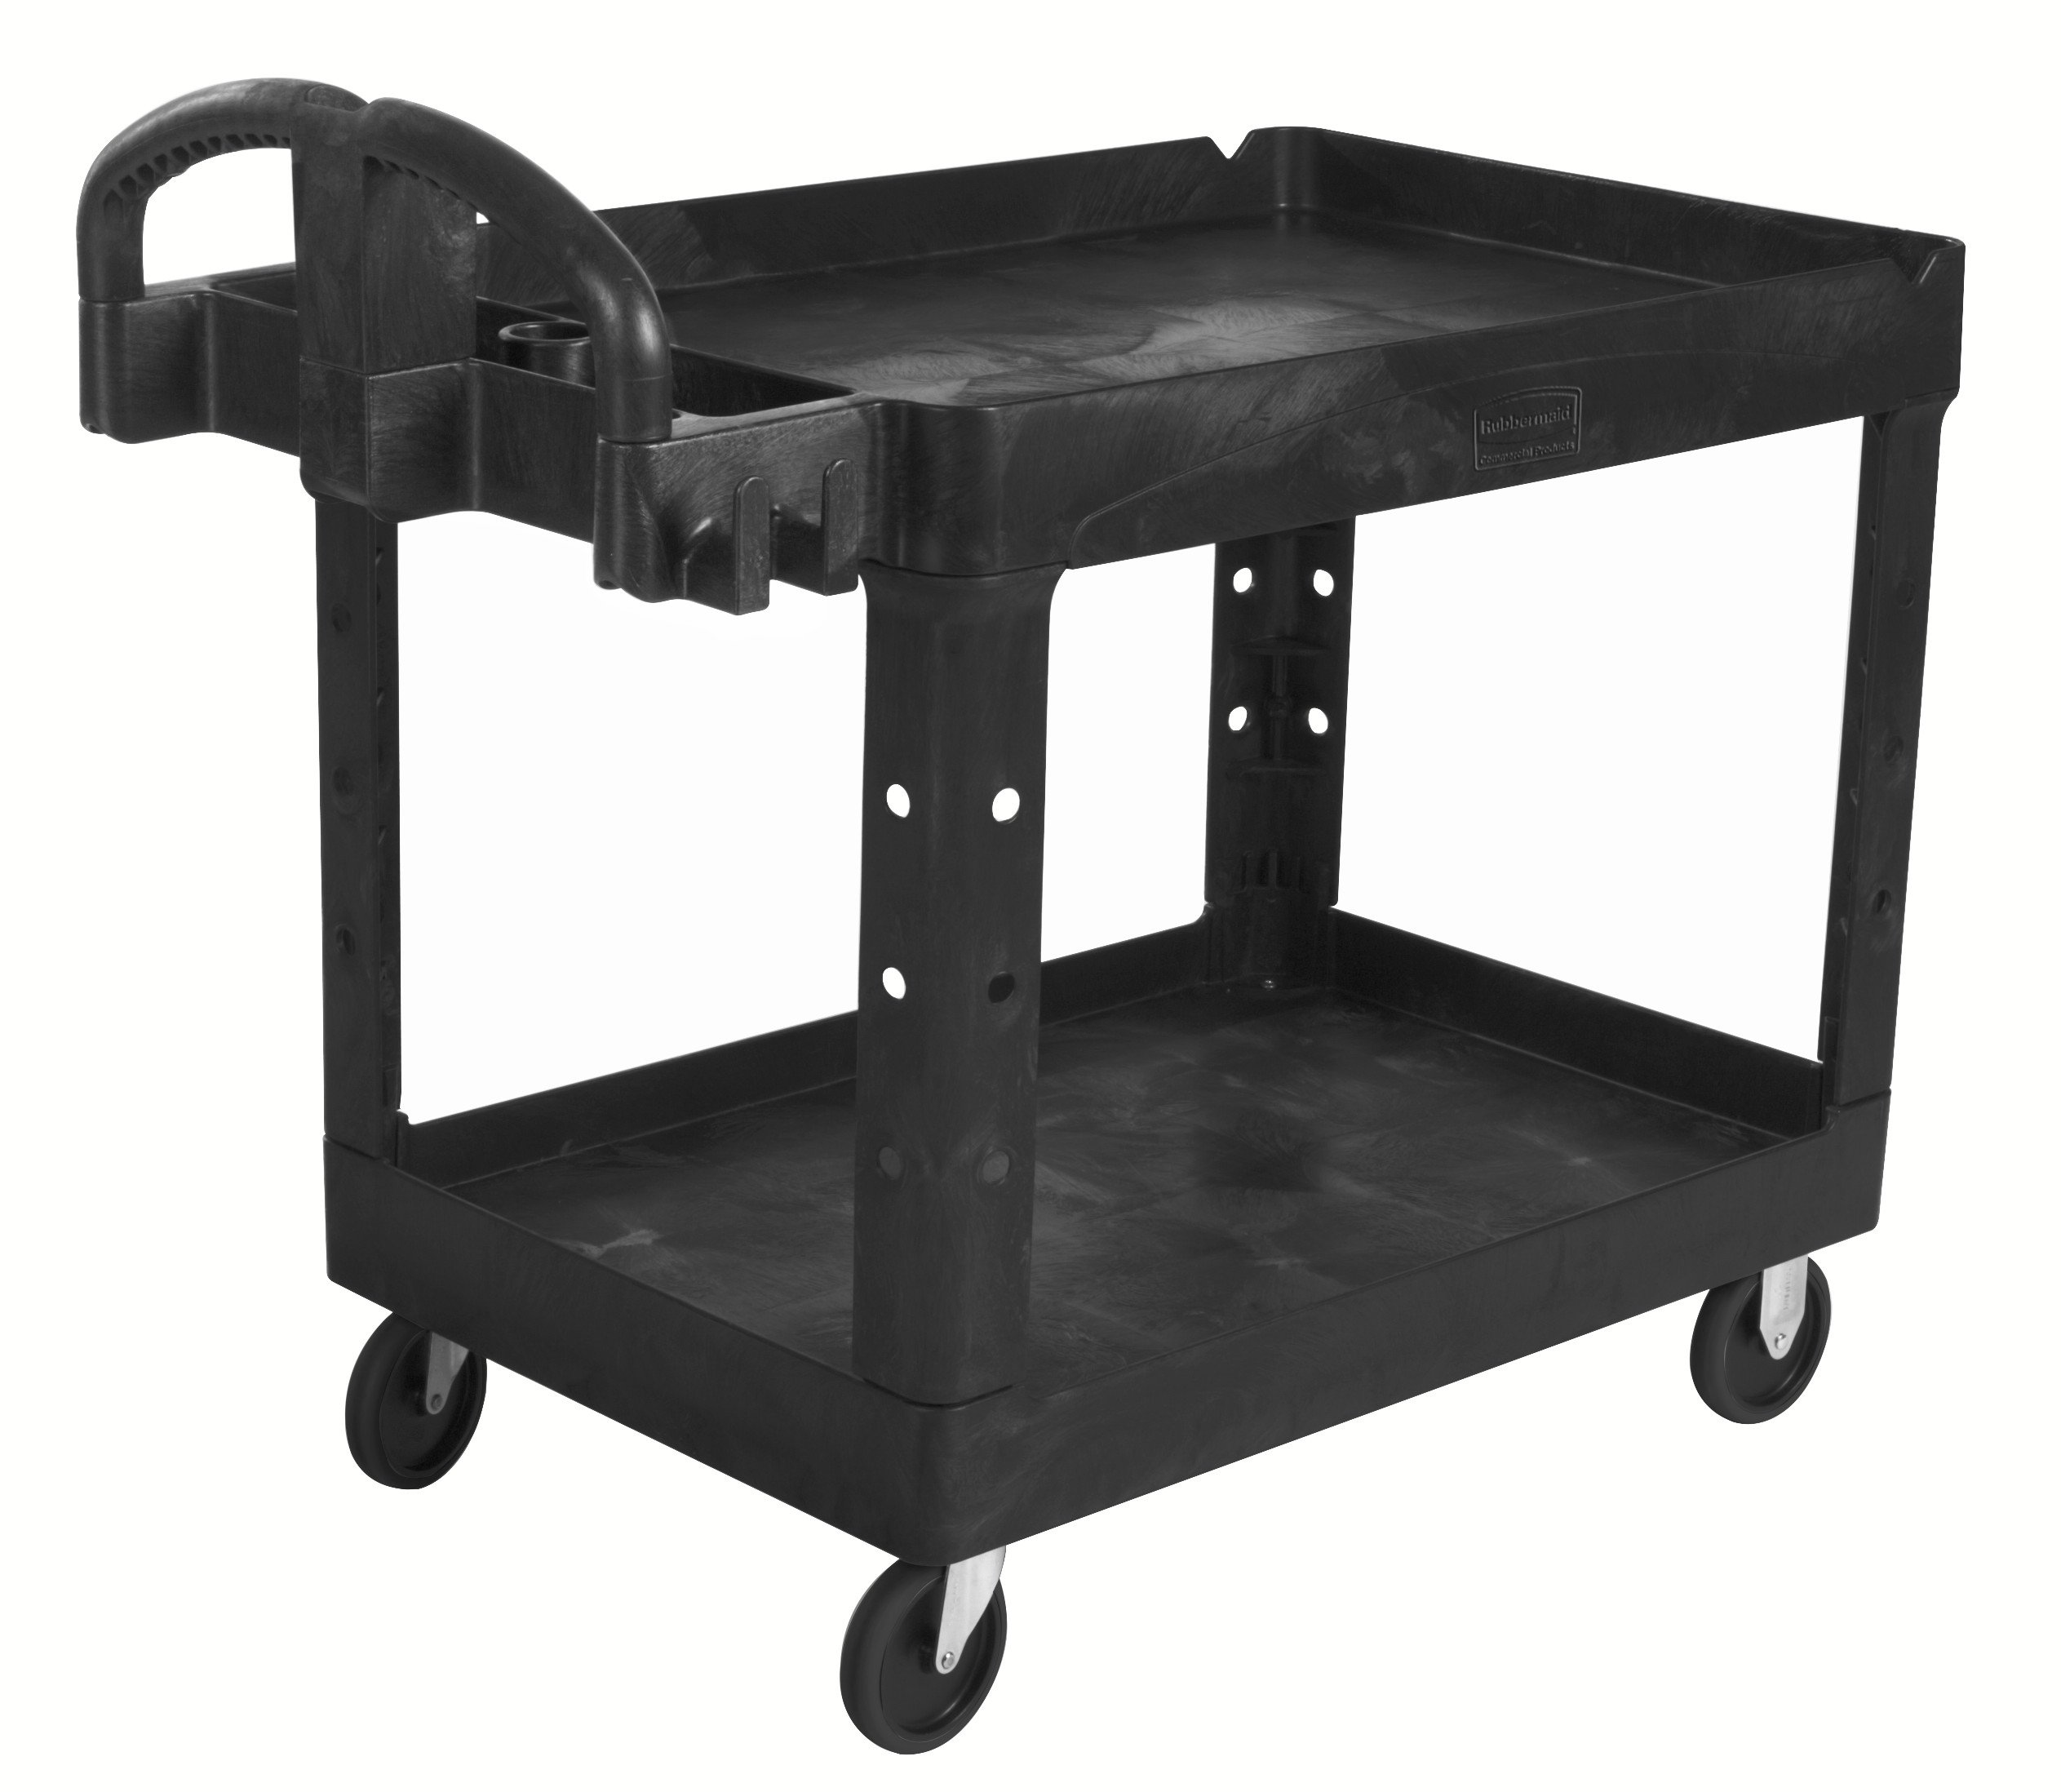 Rubbermaid Commercial Executive Series Heavy-Duty 2-Shelf Utility Cart with Quiet Casters, 500 lb capacity, Black (1867535) by Rubbermaid Commercial Products